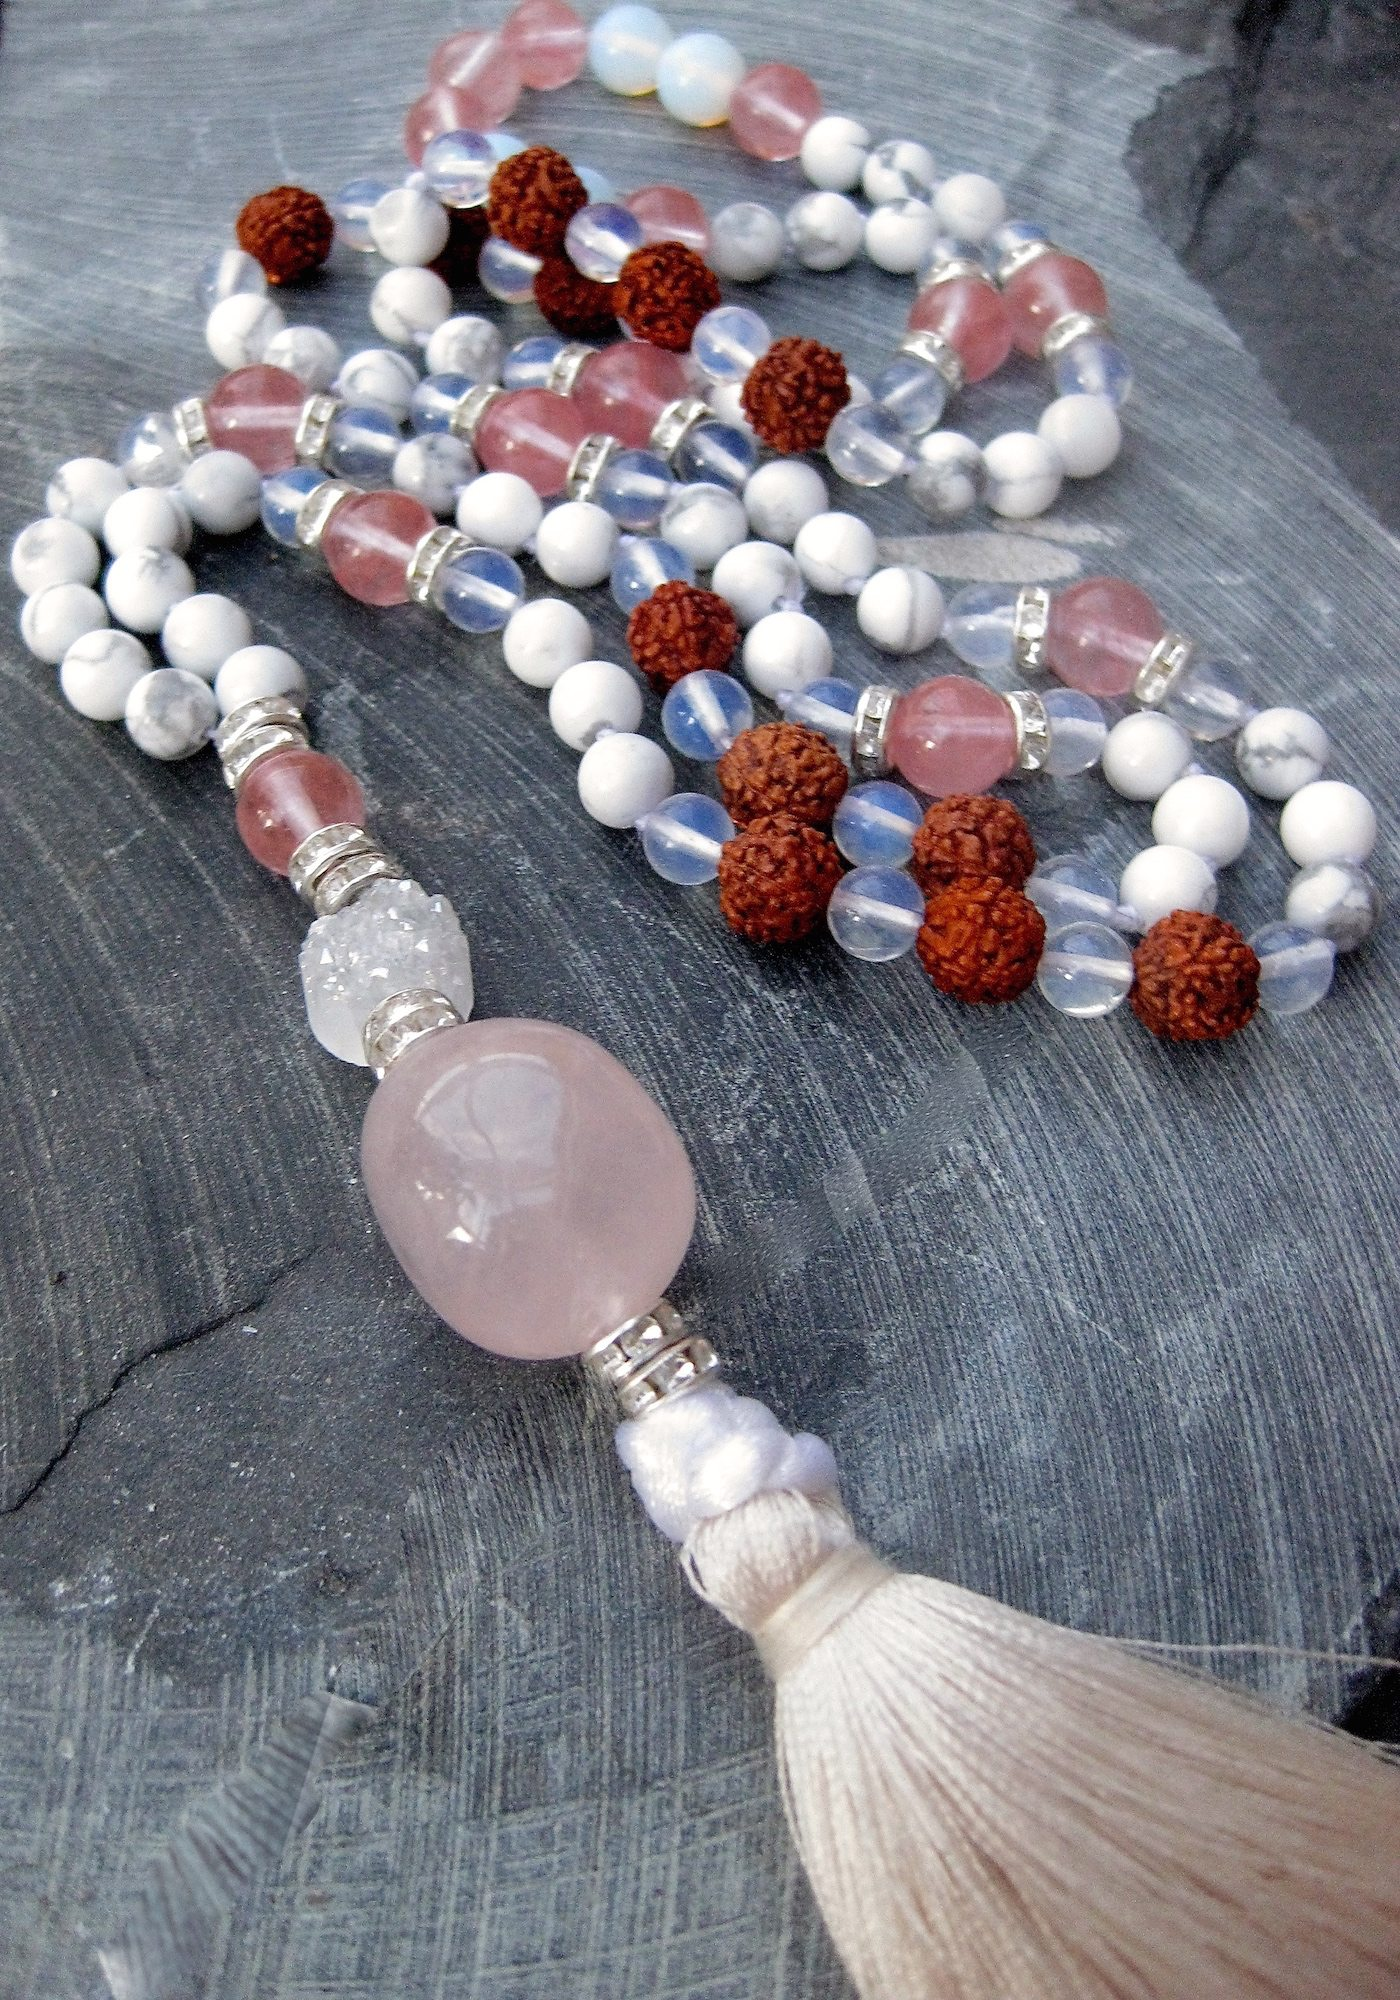 Rose quartz, clear quartz, rudraksha beads, moonstones mala necklace, crystal diamante spacers